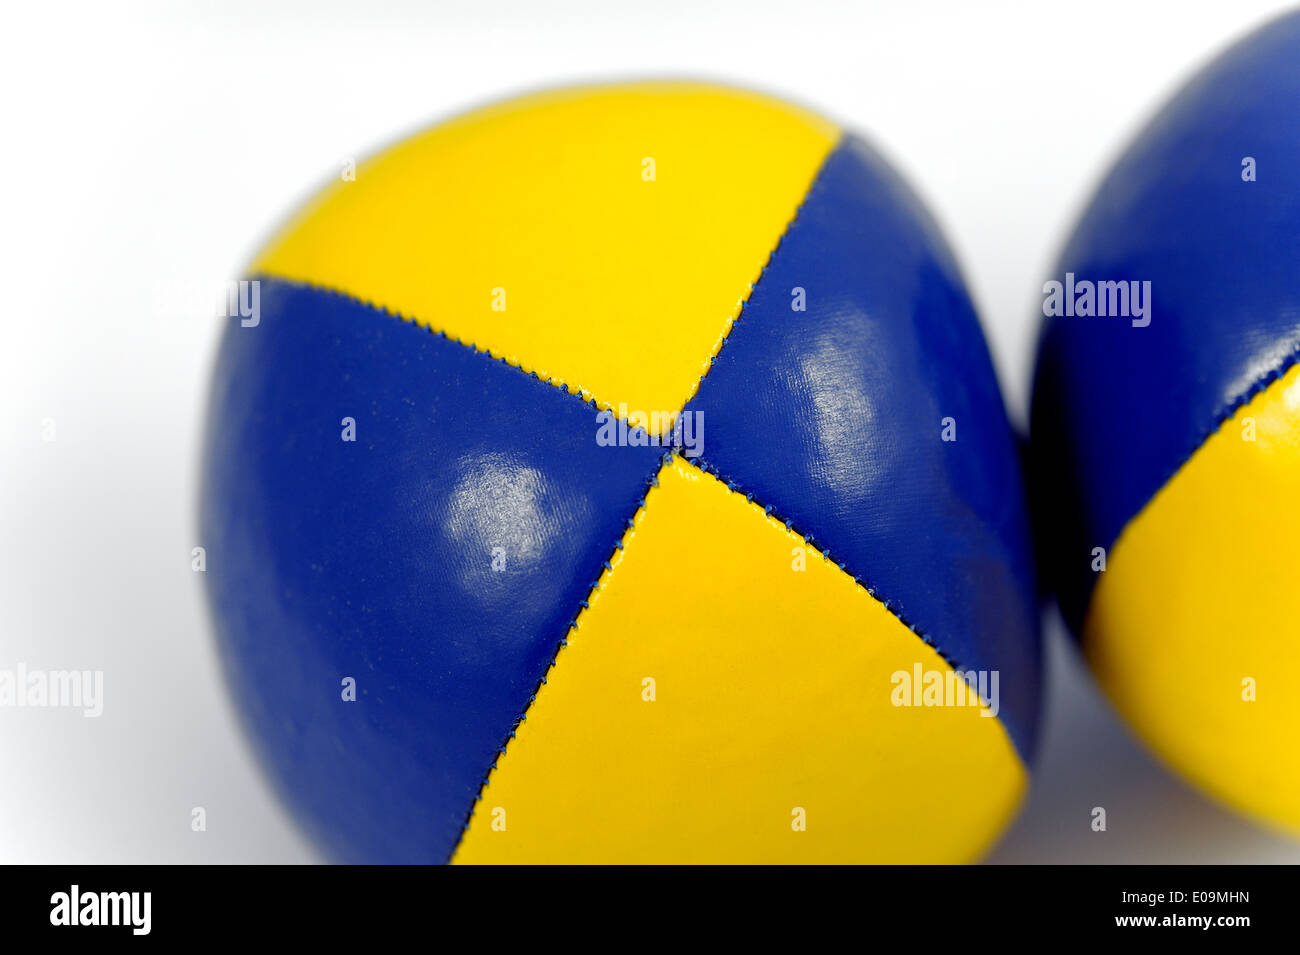 Blue and Yellow soft juggling balls - Stock Image